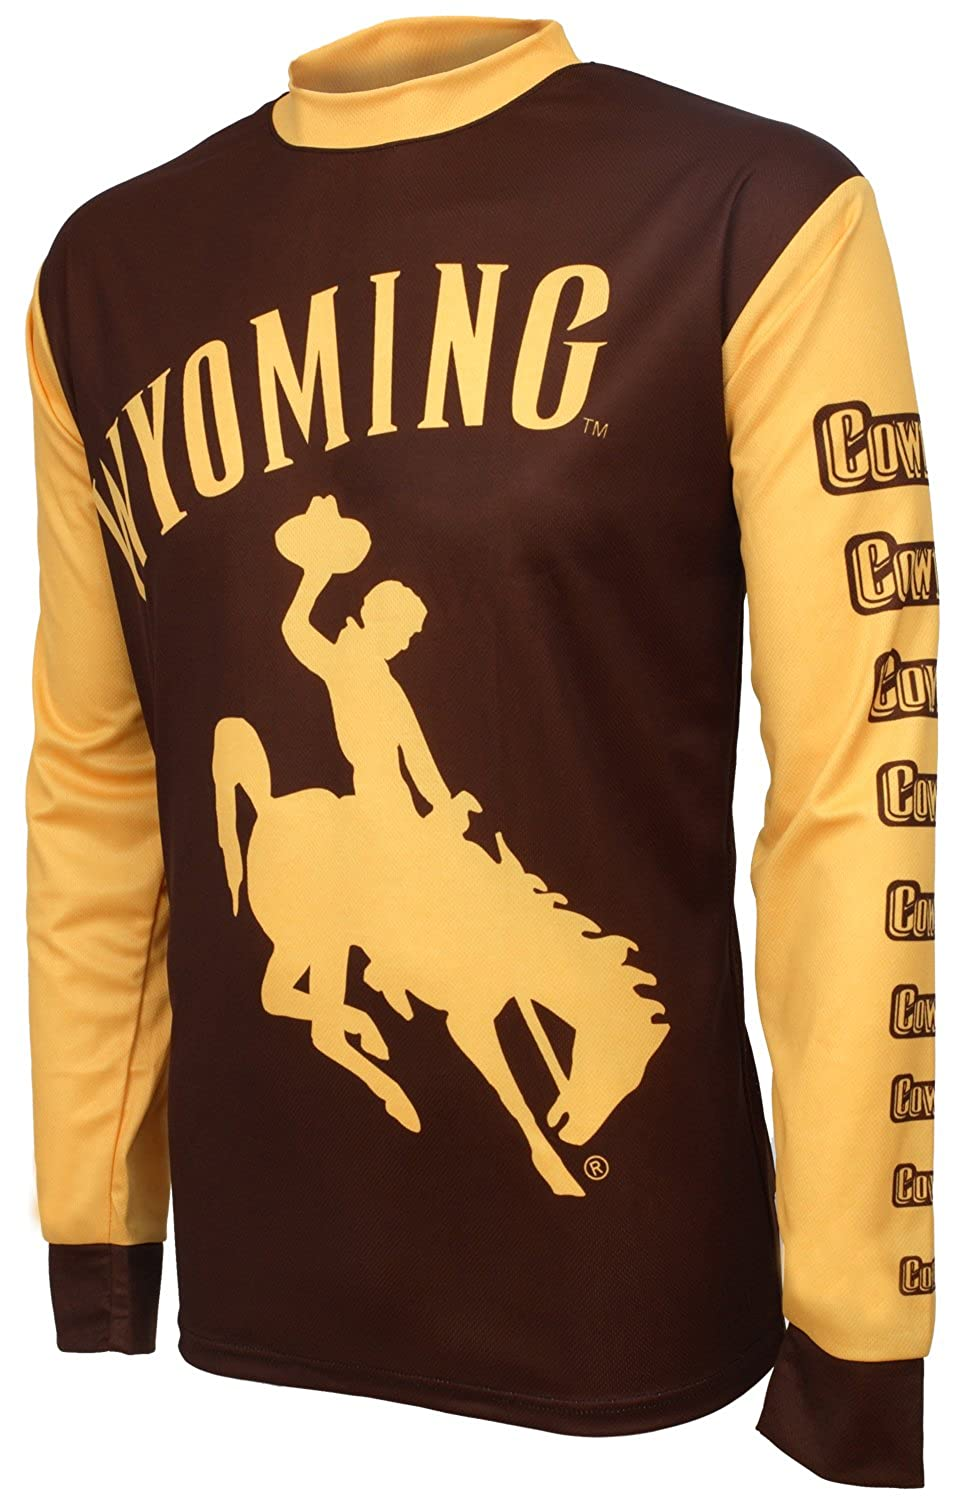 new style 25c71 d6745 NCAA Wyoming Cowboys Mountain Bike Cycling Jersey